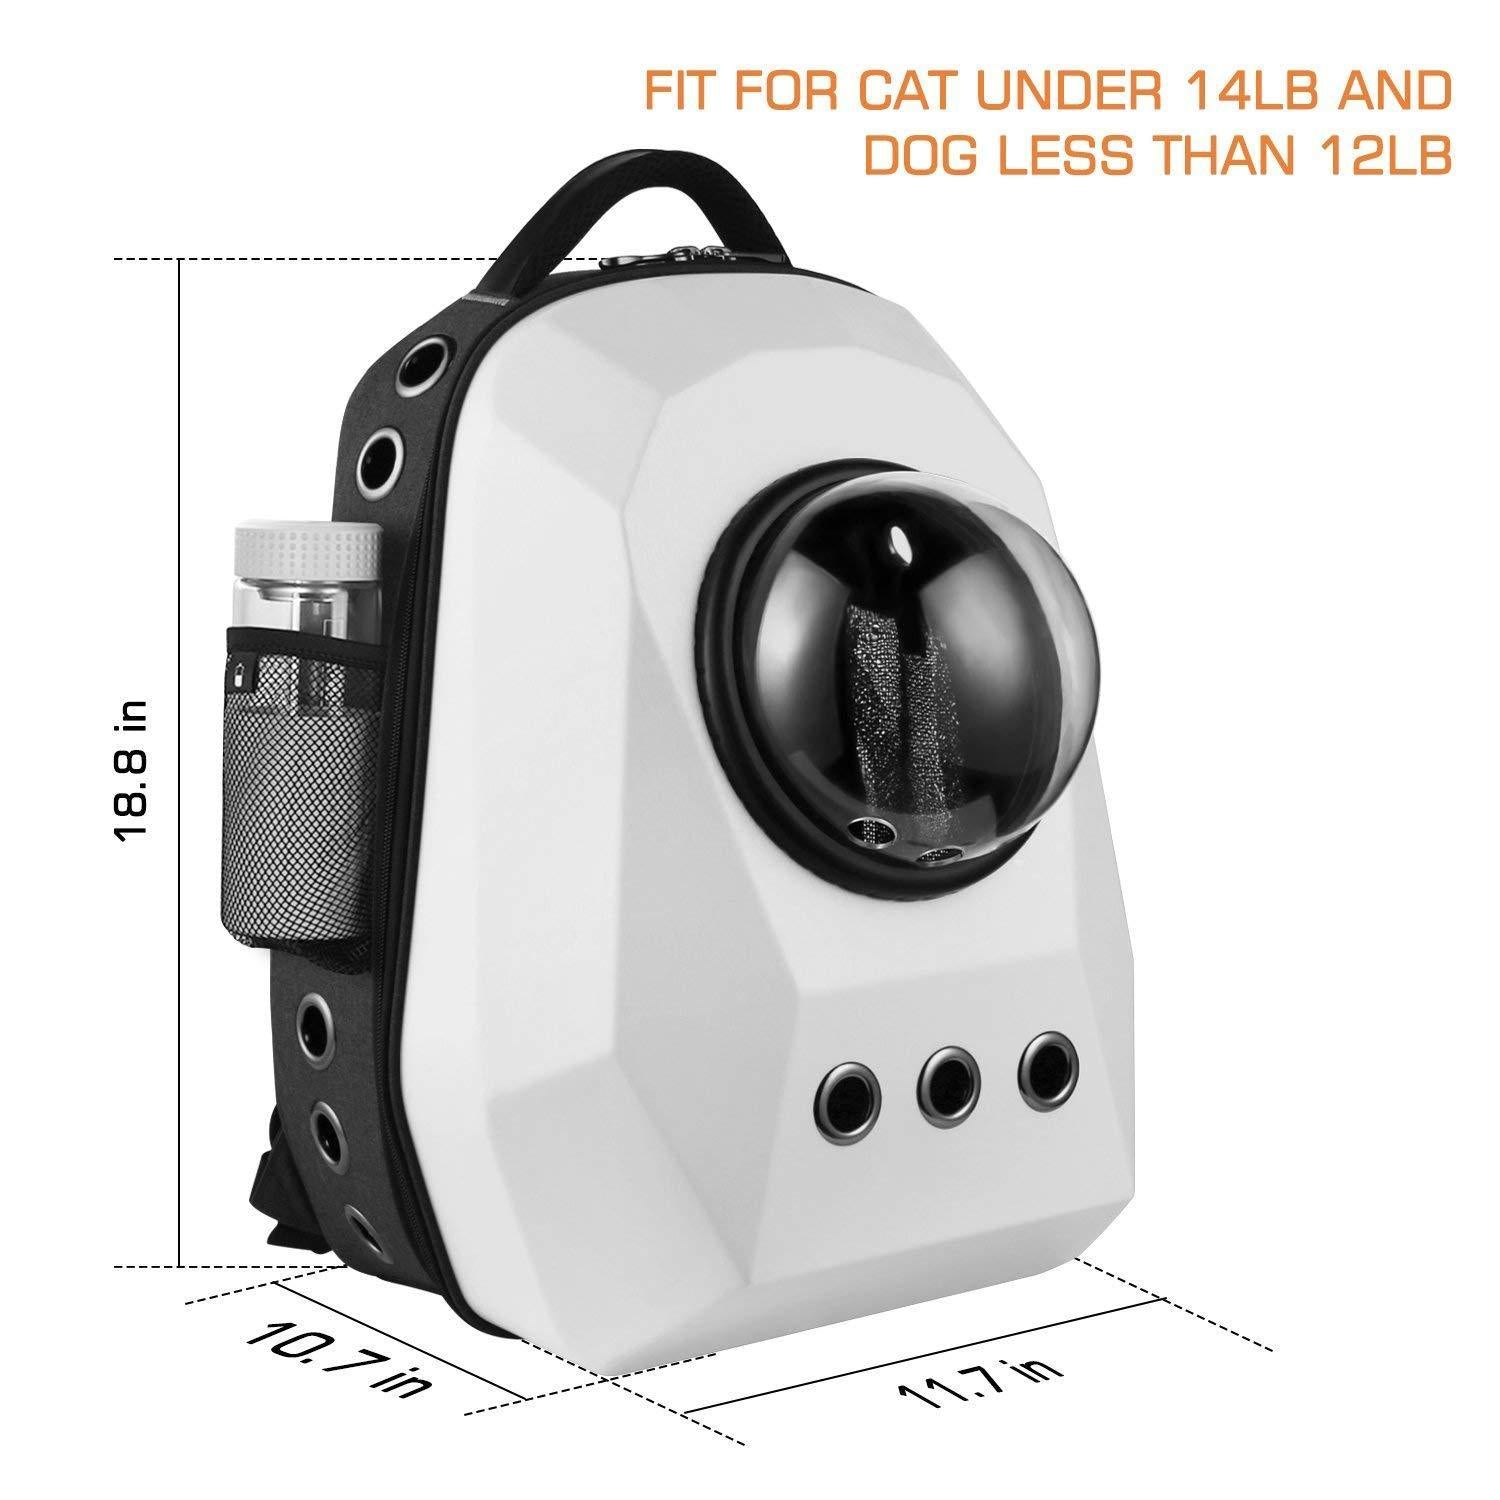 Pet Portable Carrier Space Capsule Backpack, Pet Bubble Traveler Knapsack Multiple Air Vents Waterproof Lightweight Handbag for Cats Small Dogs & Petite Animals